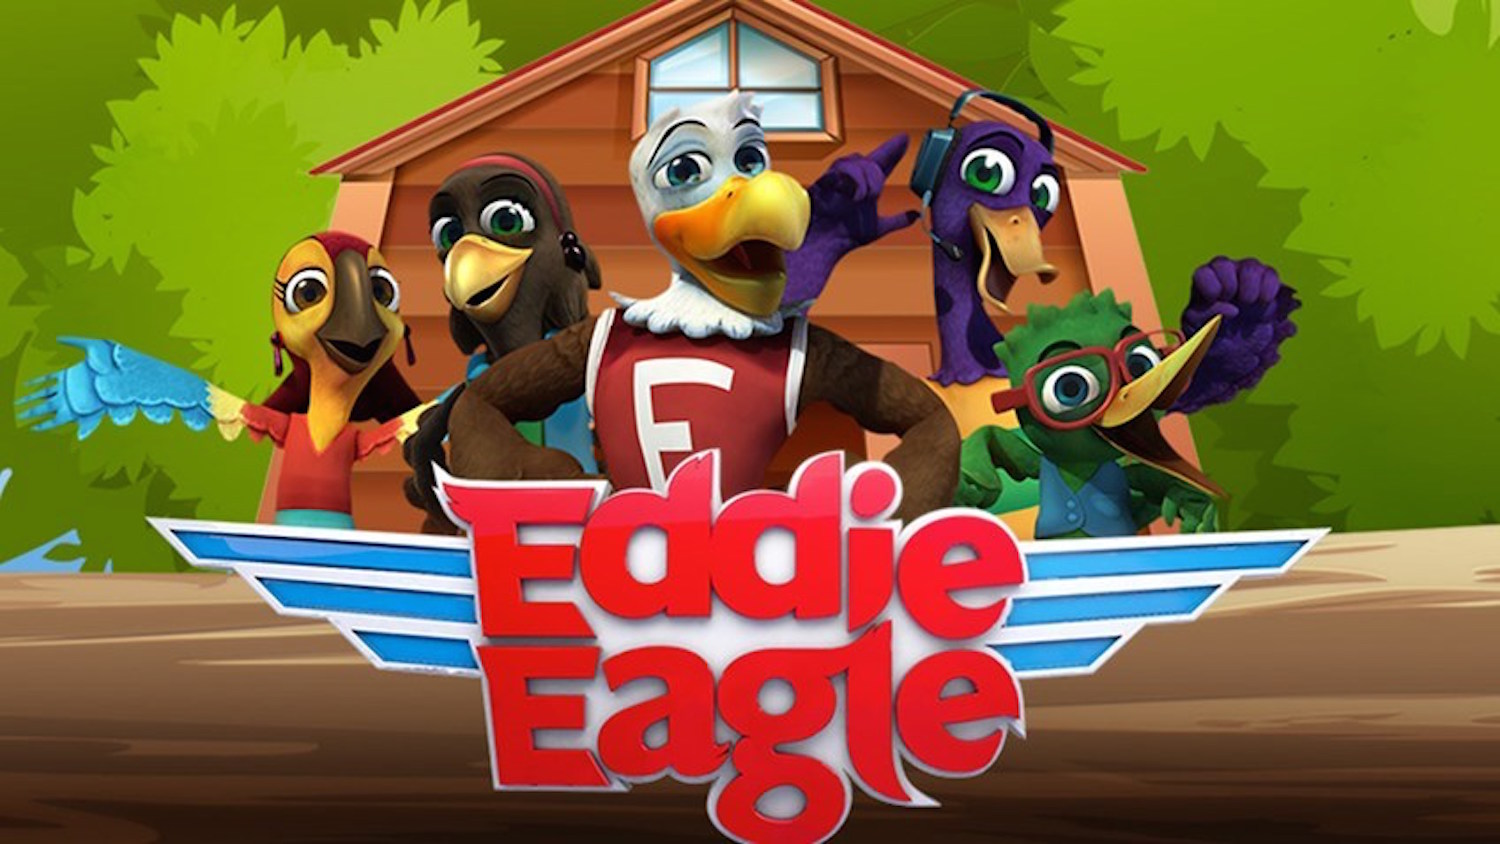 WJBF: Eddie Eagle Teaches Students How To Stay Safe Around Guns